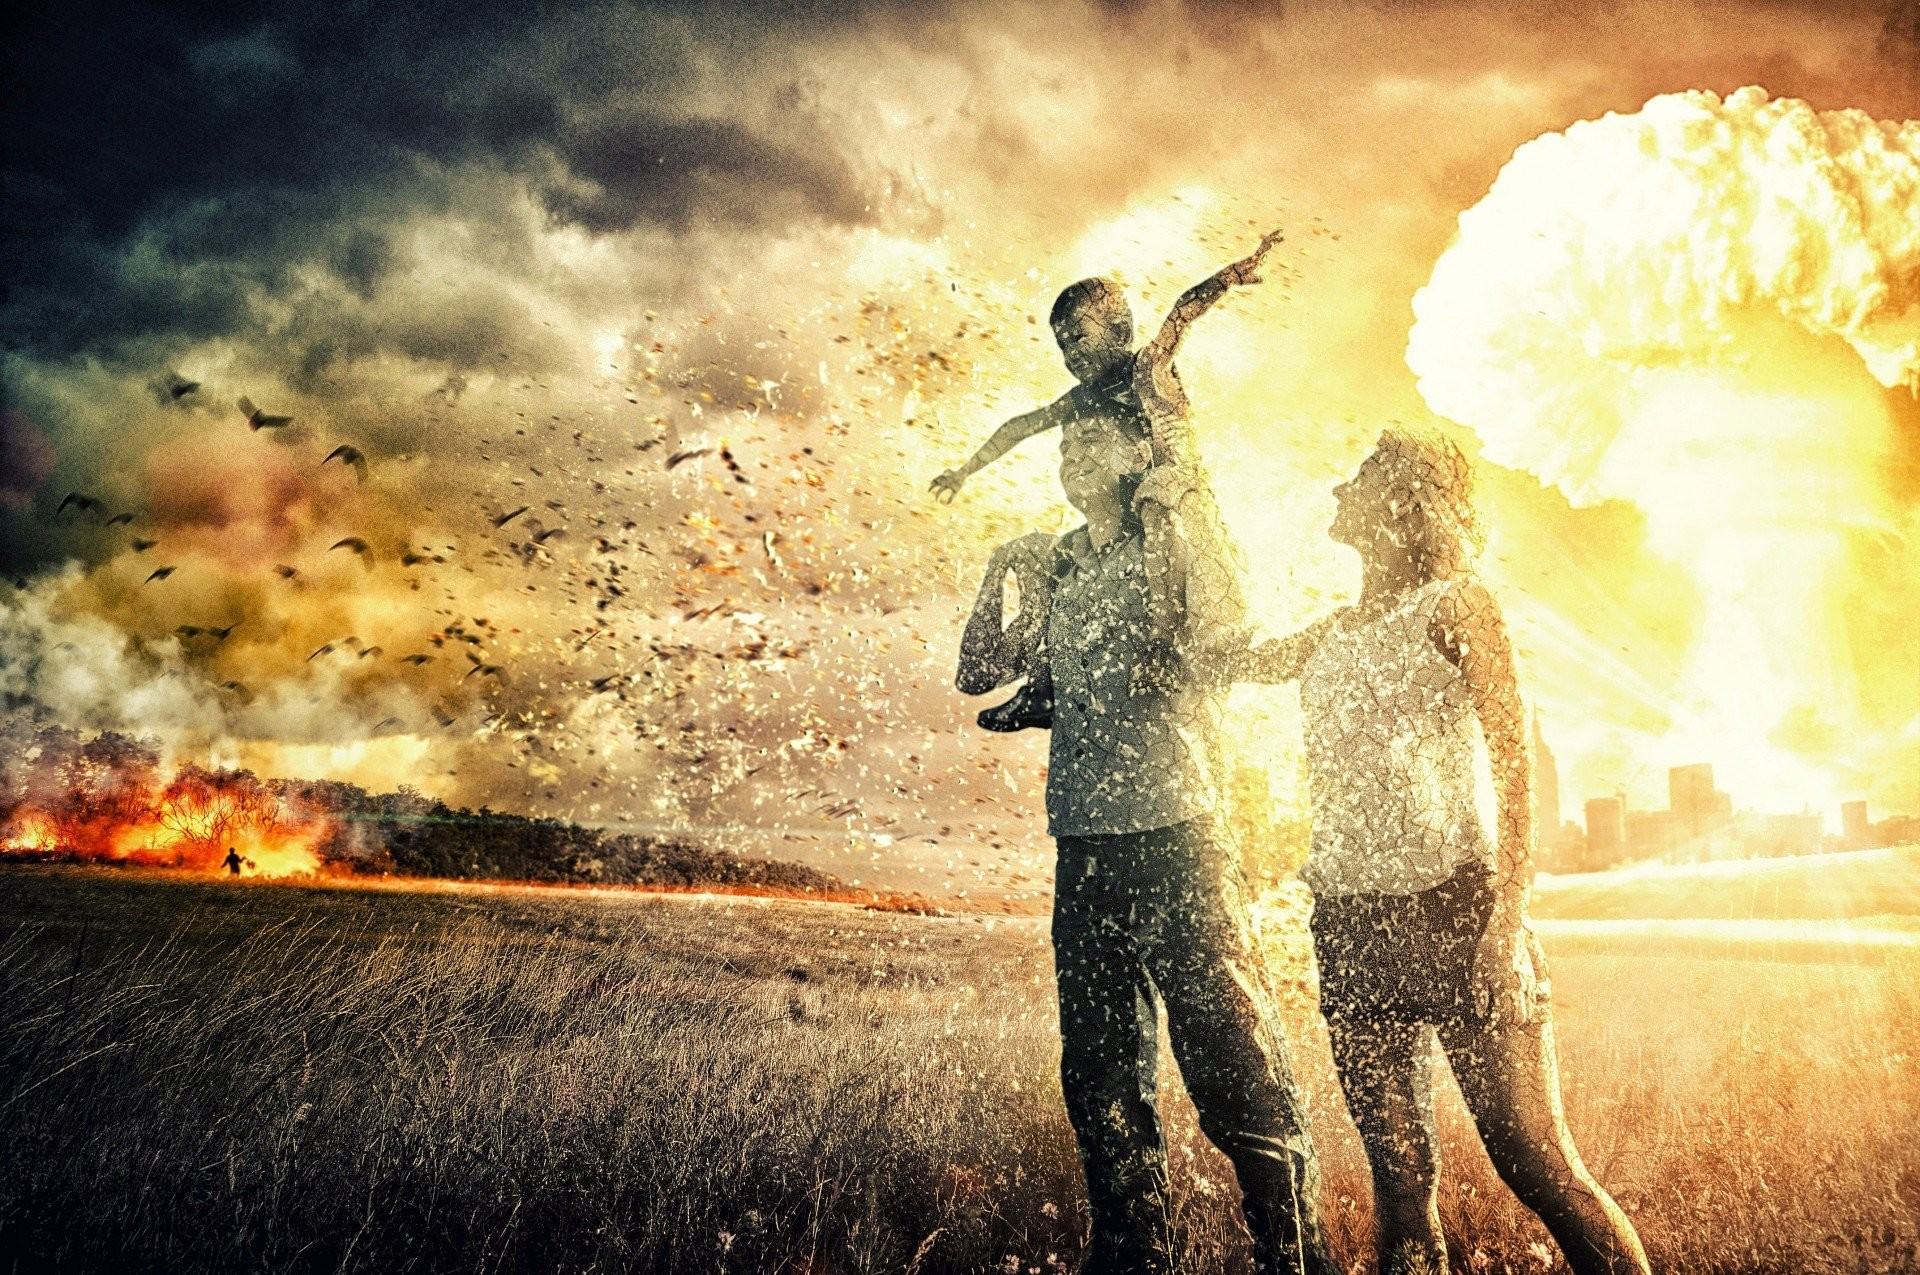 nuclear explosion war family heath the field people